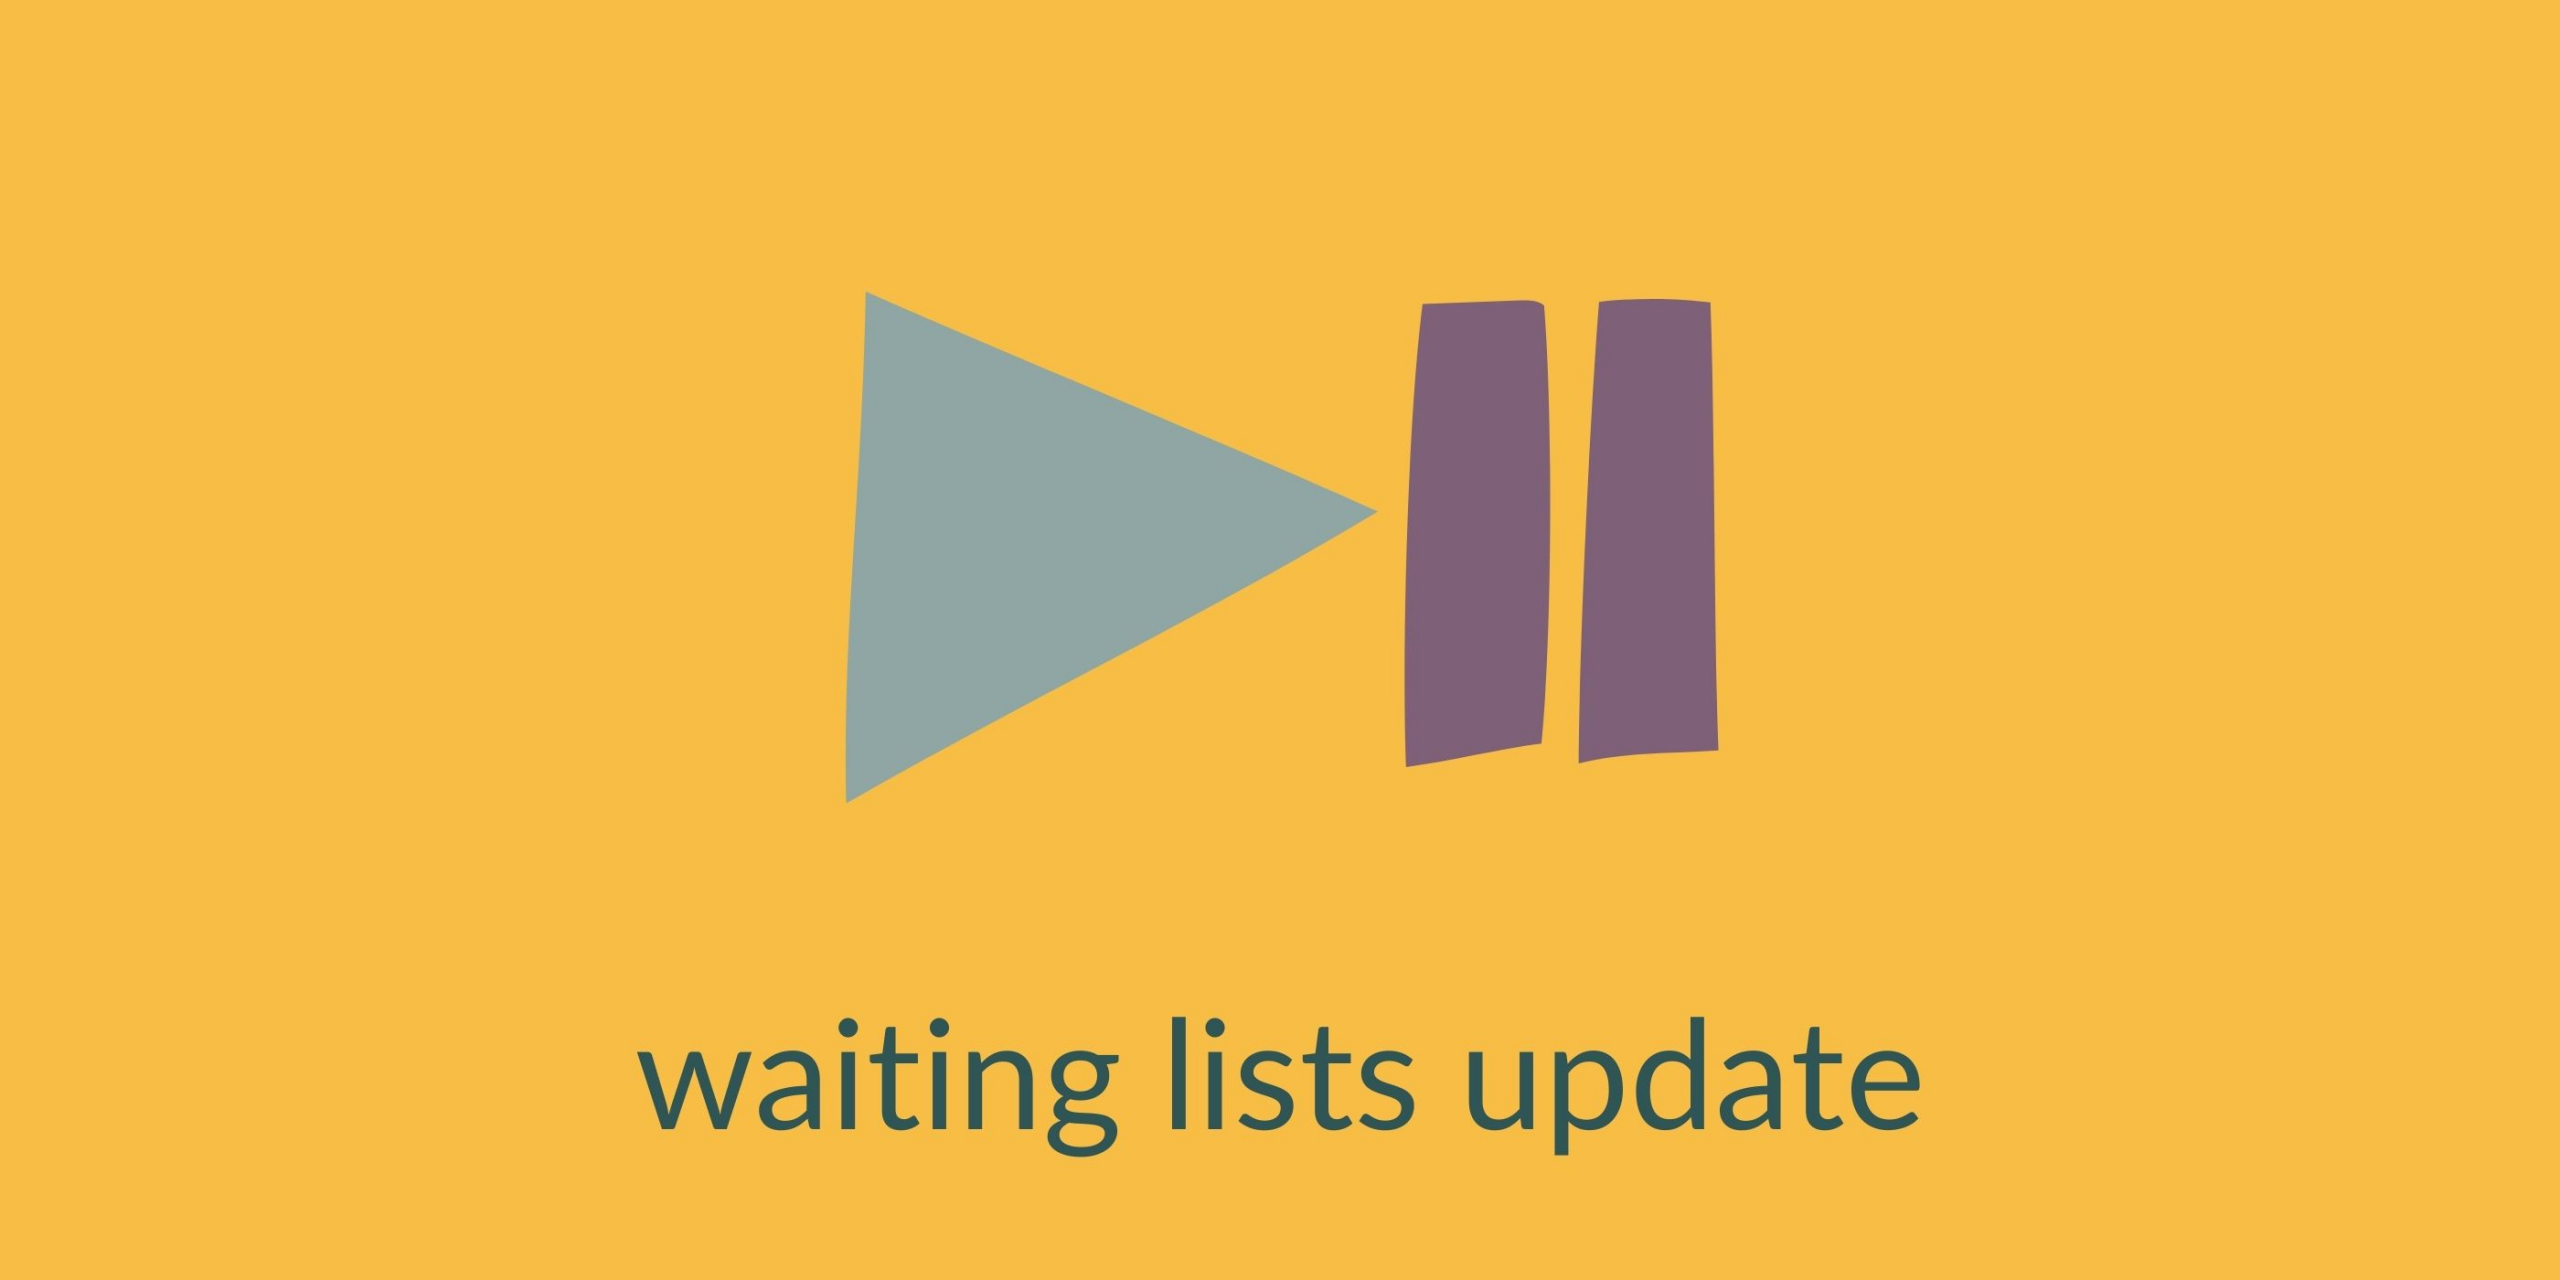 play and pause symbols, text reads: waiting lists update